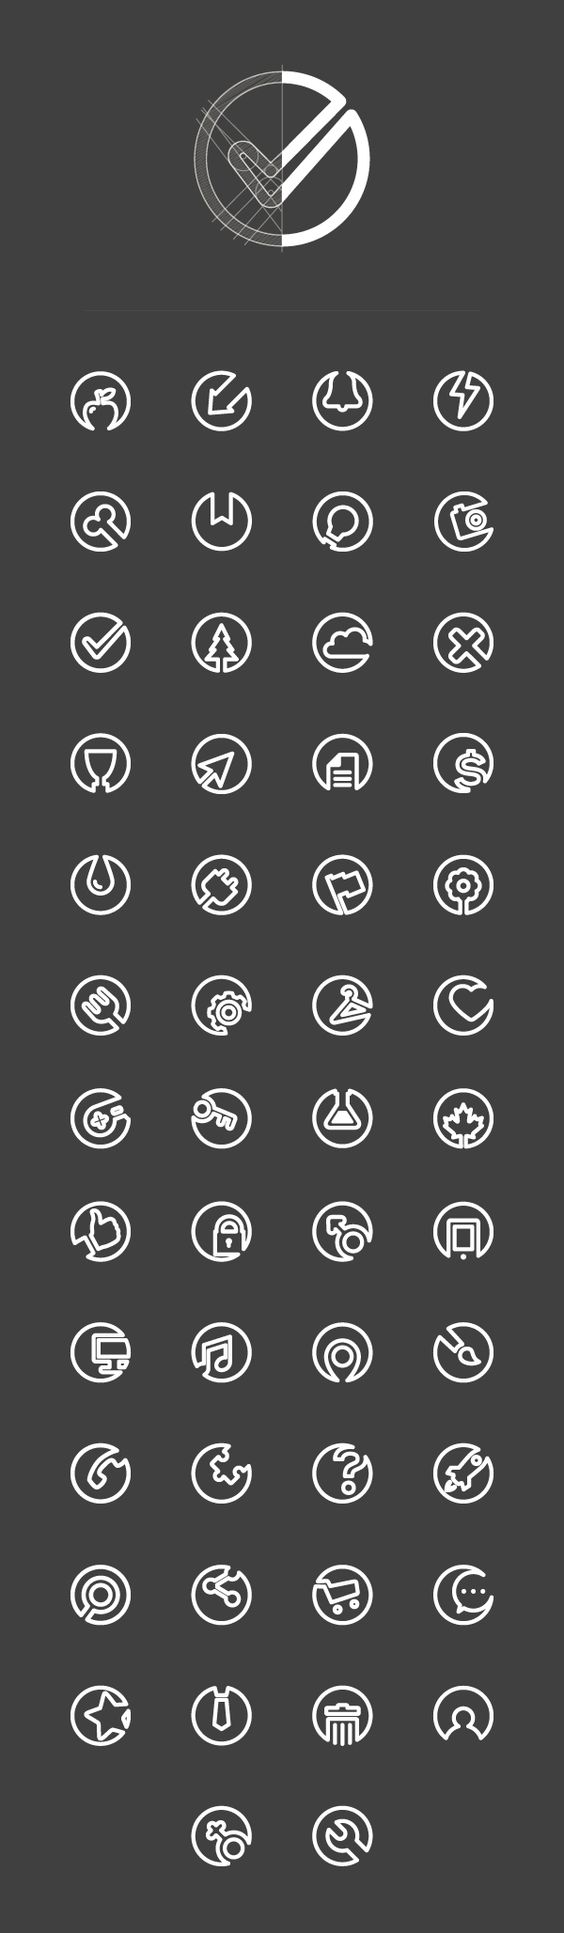 Here are some simple icon designs. I like how easy clean they are and each one has a specific opening to it that allows the icon to be a part of the background. I also like how they are all see through and tie in well the background also.